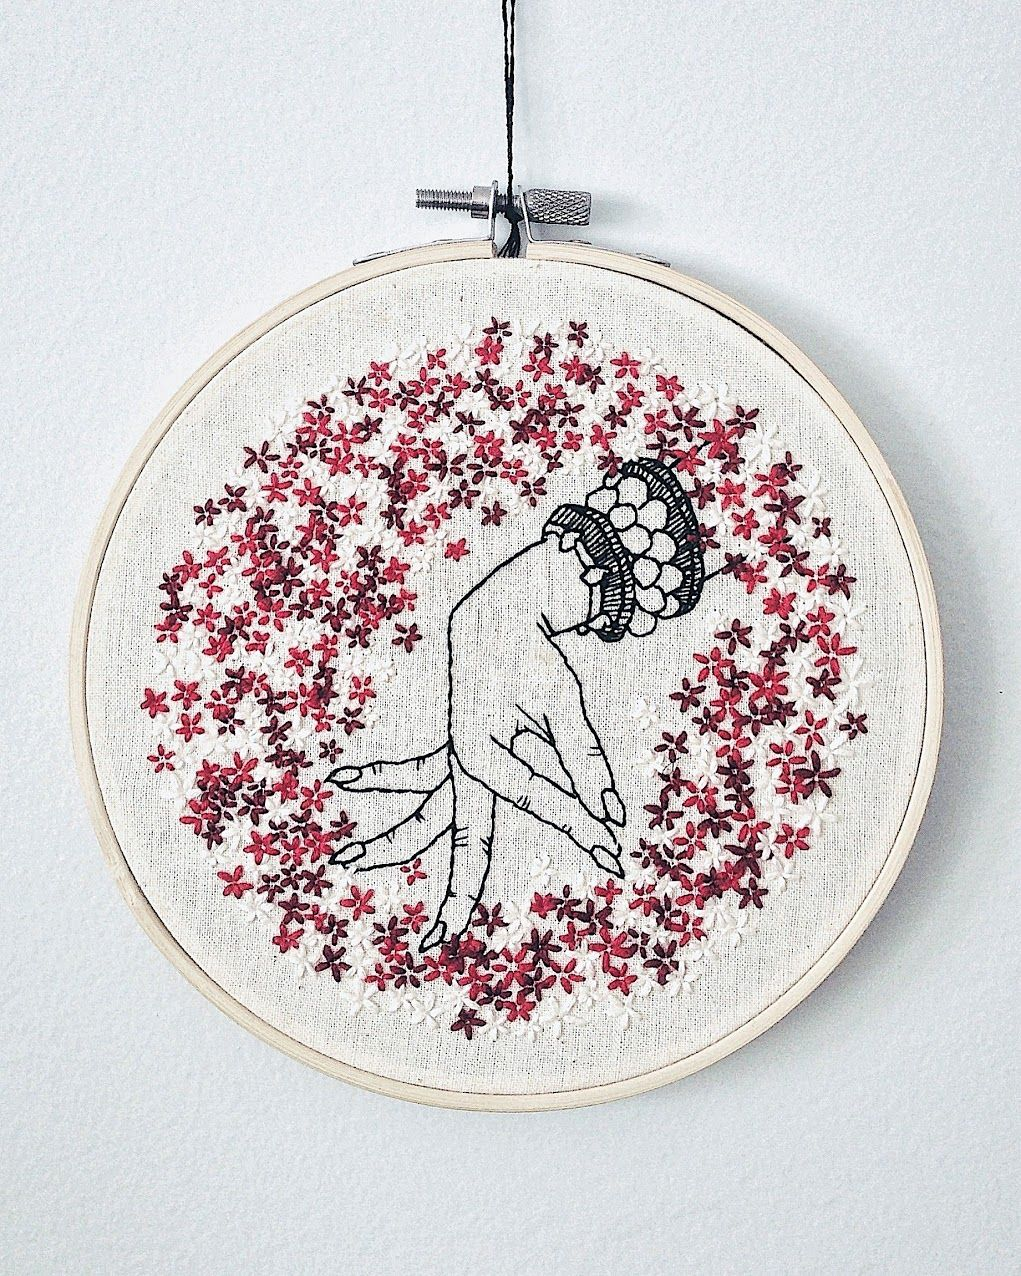 Vorn Vann is an embroidery artist from Ontario Canada